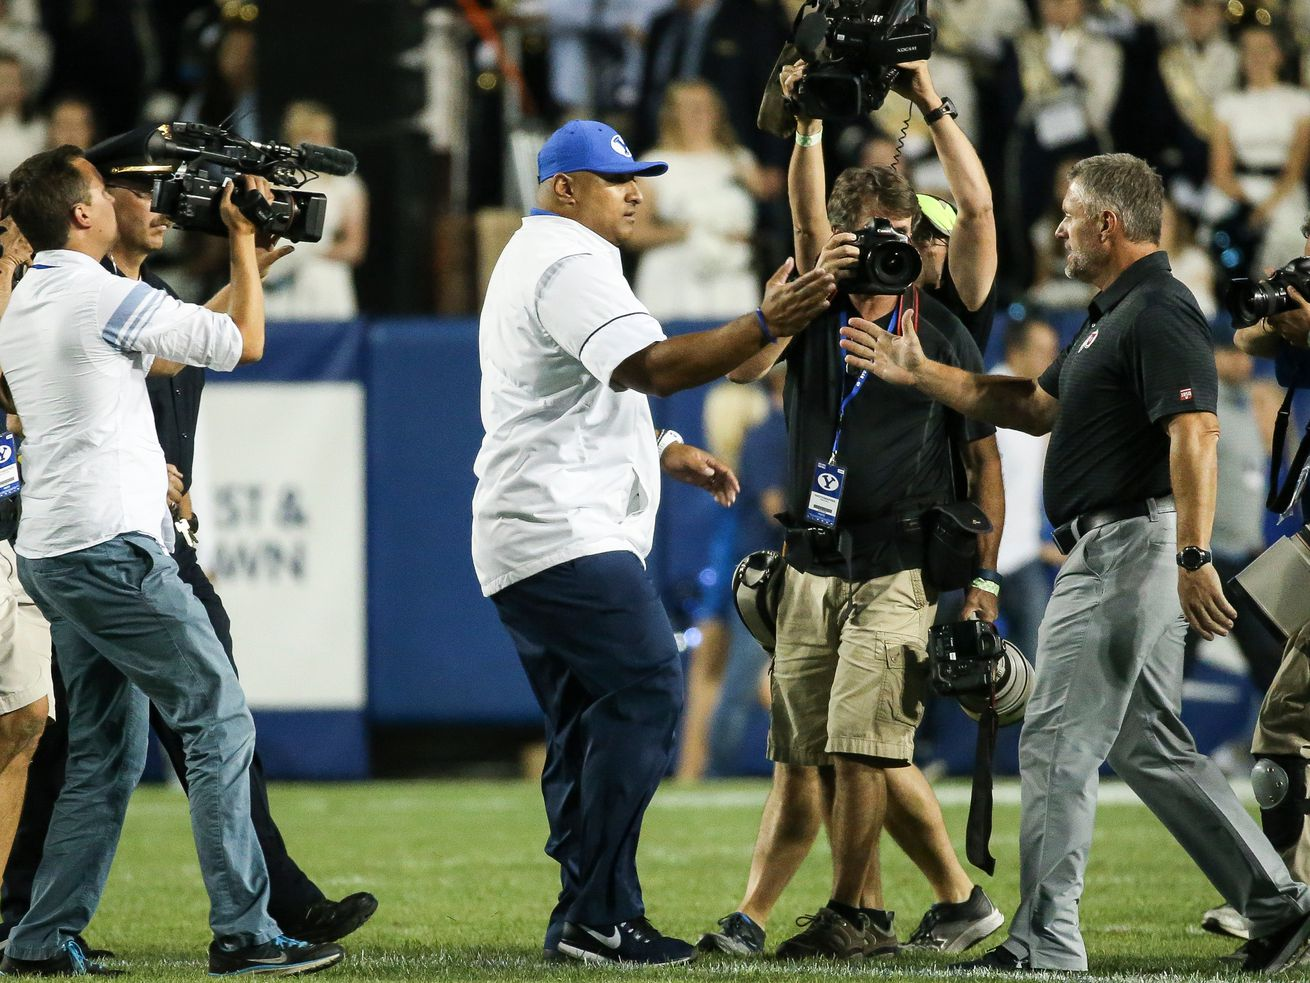 BYU coach Kalani Sitake, left, and Utah coach Kyle Whittingham shake hands after game at LaVell Edwards Stadium in Provo on Saturday, Sept. 9, 2017.